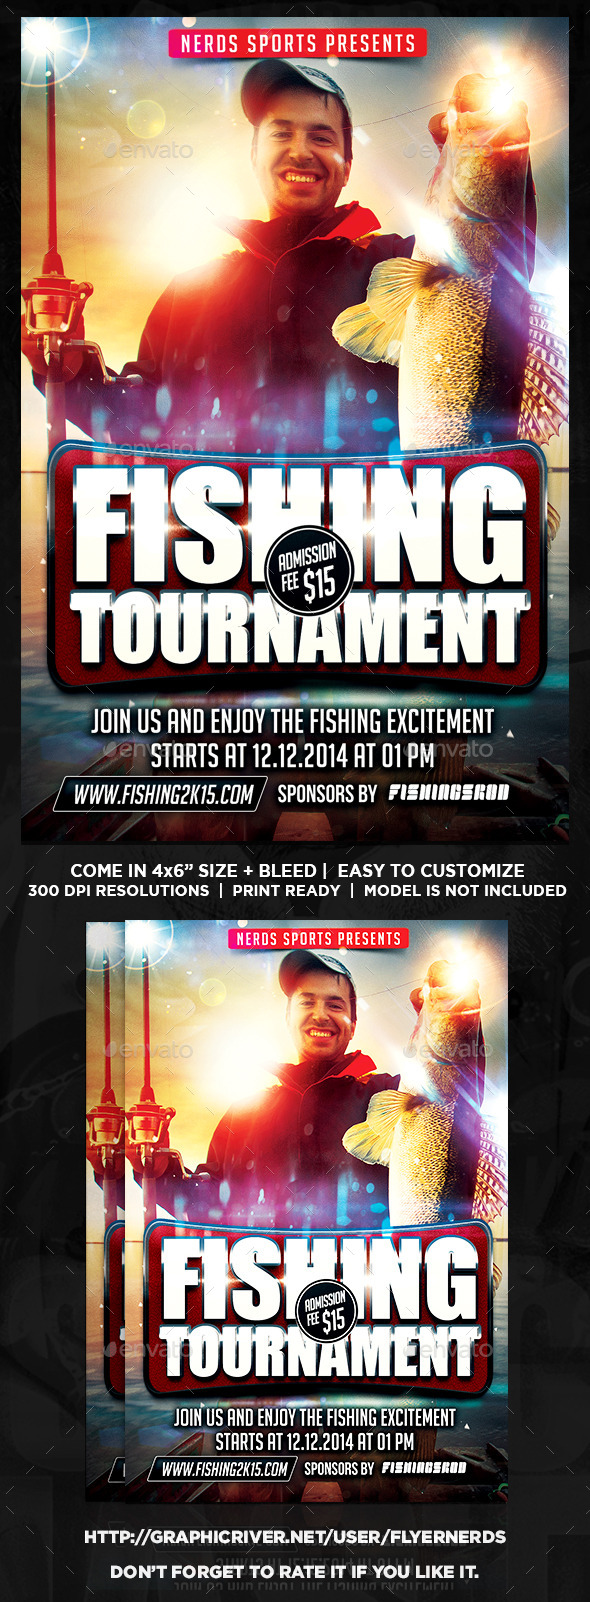 Fishing Flyer Graphics Designs Templates From Graphicriver